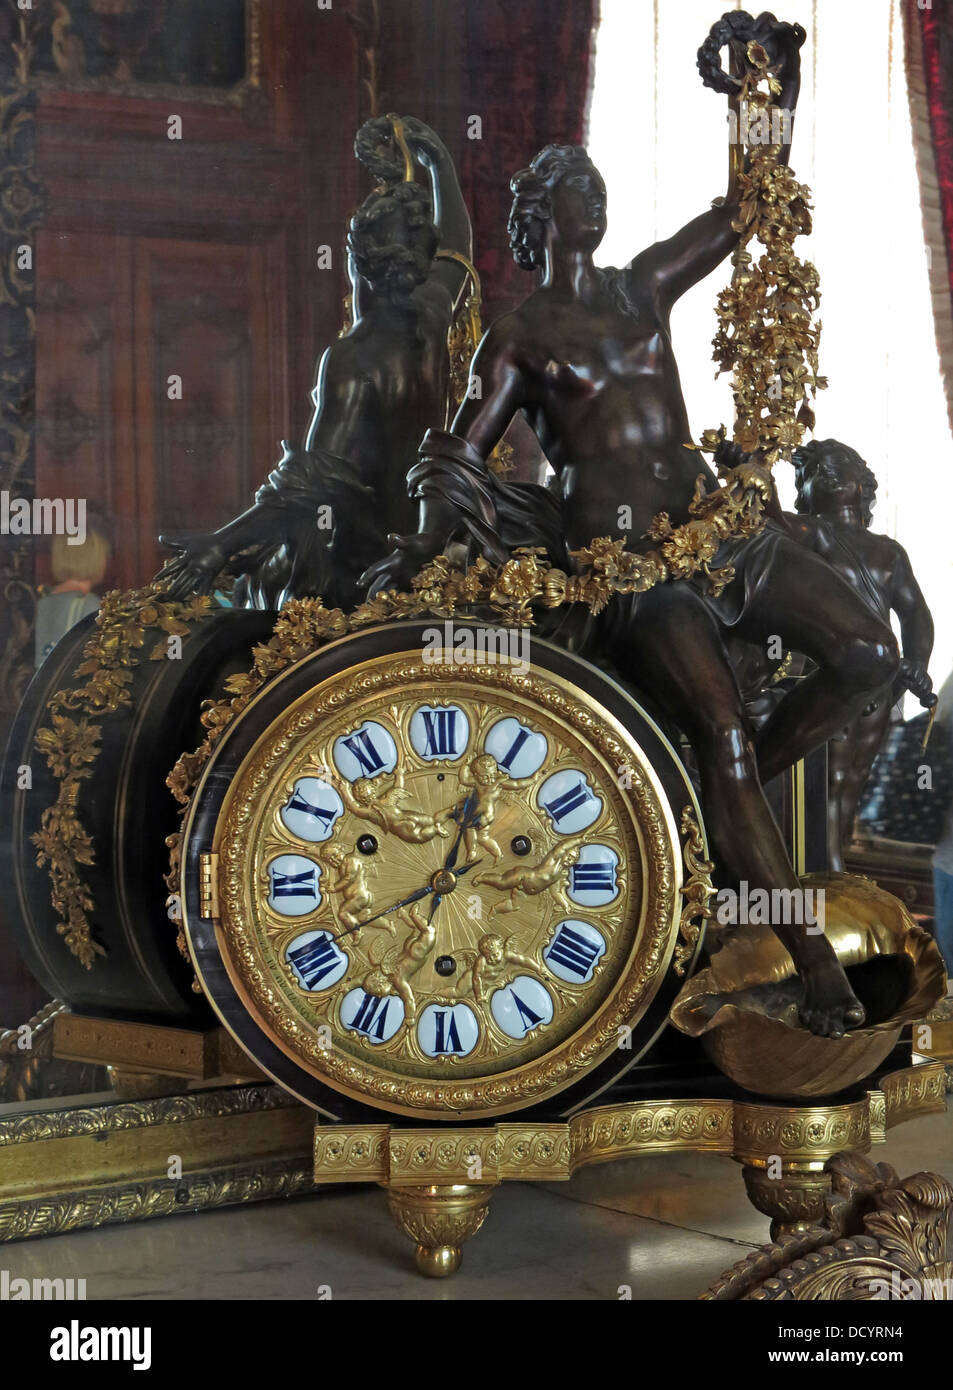 French style gold clock with black bronze statue - Stock Image